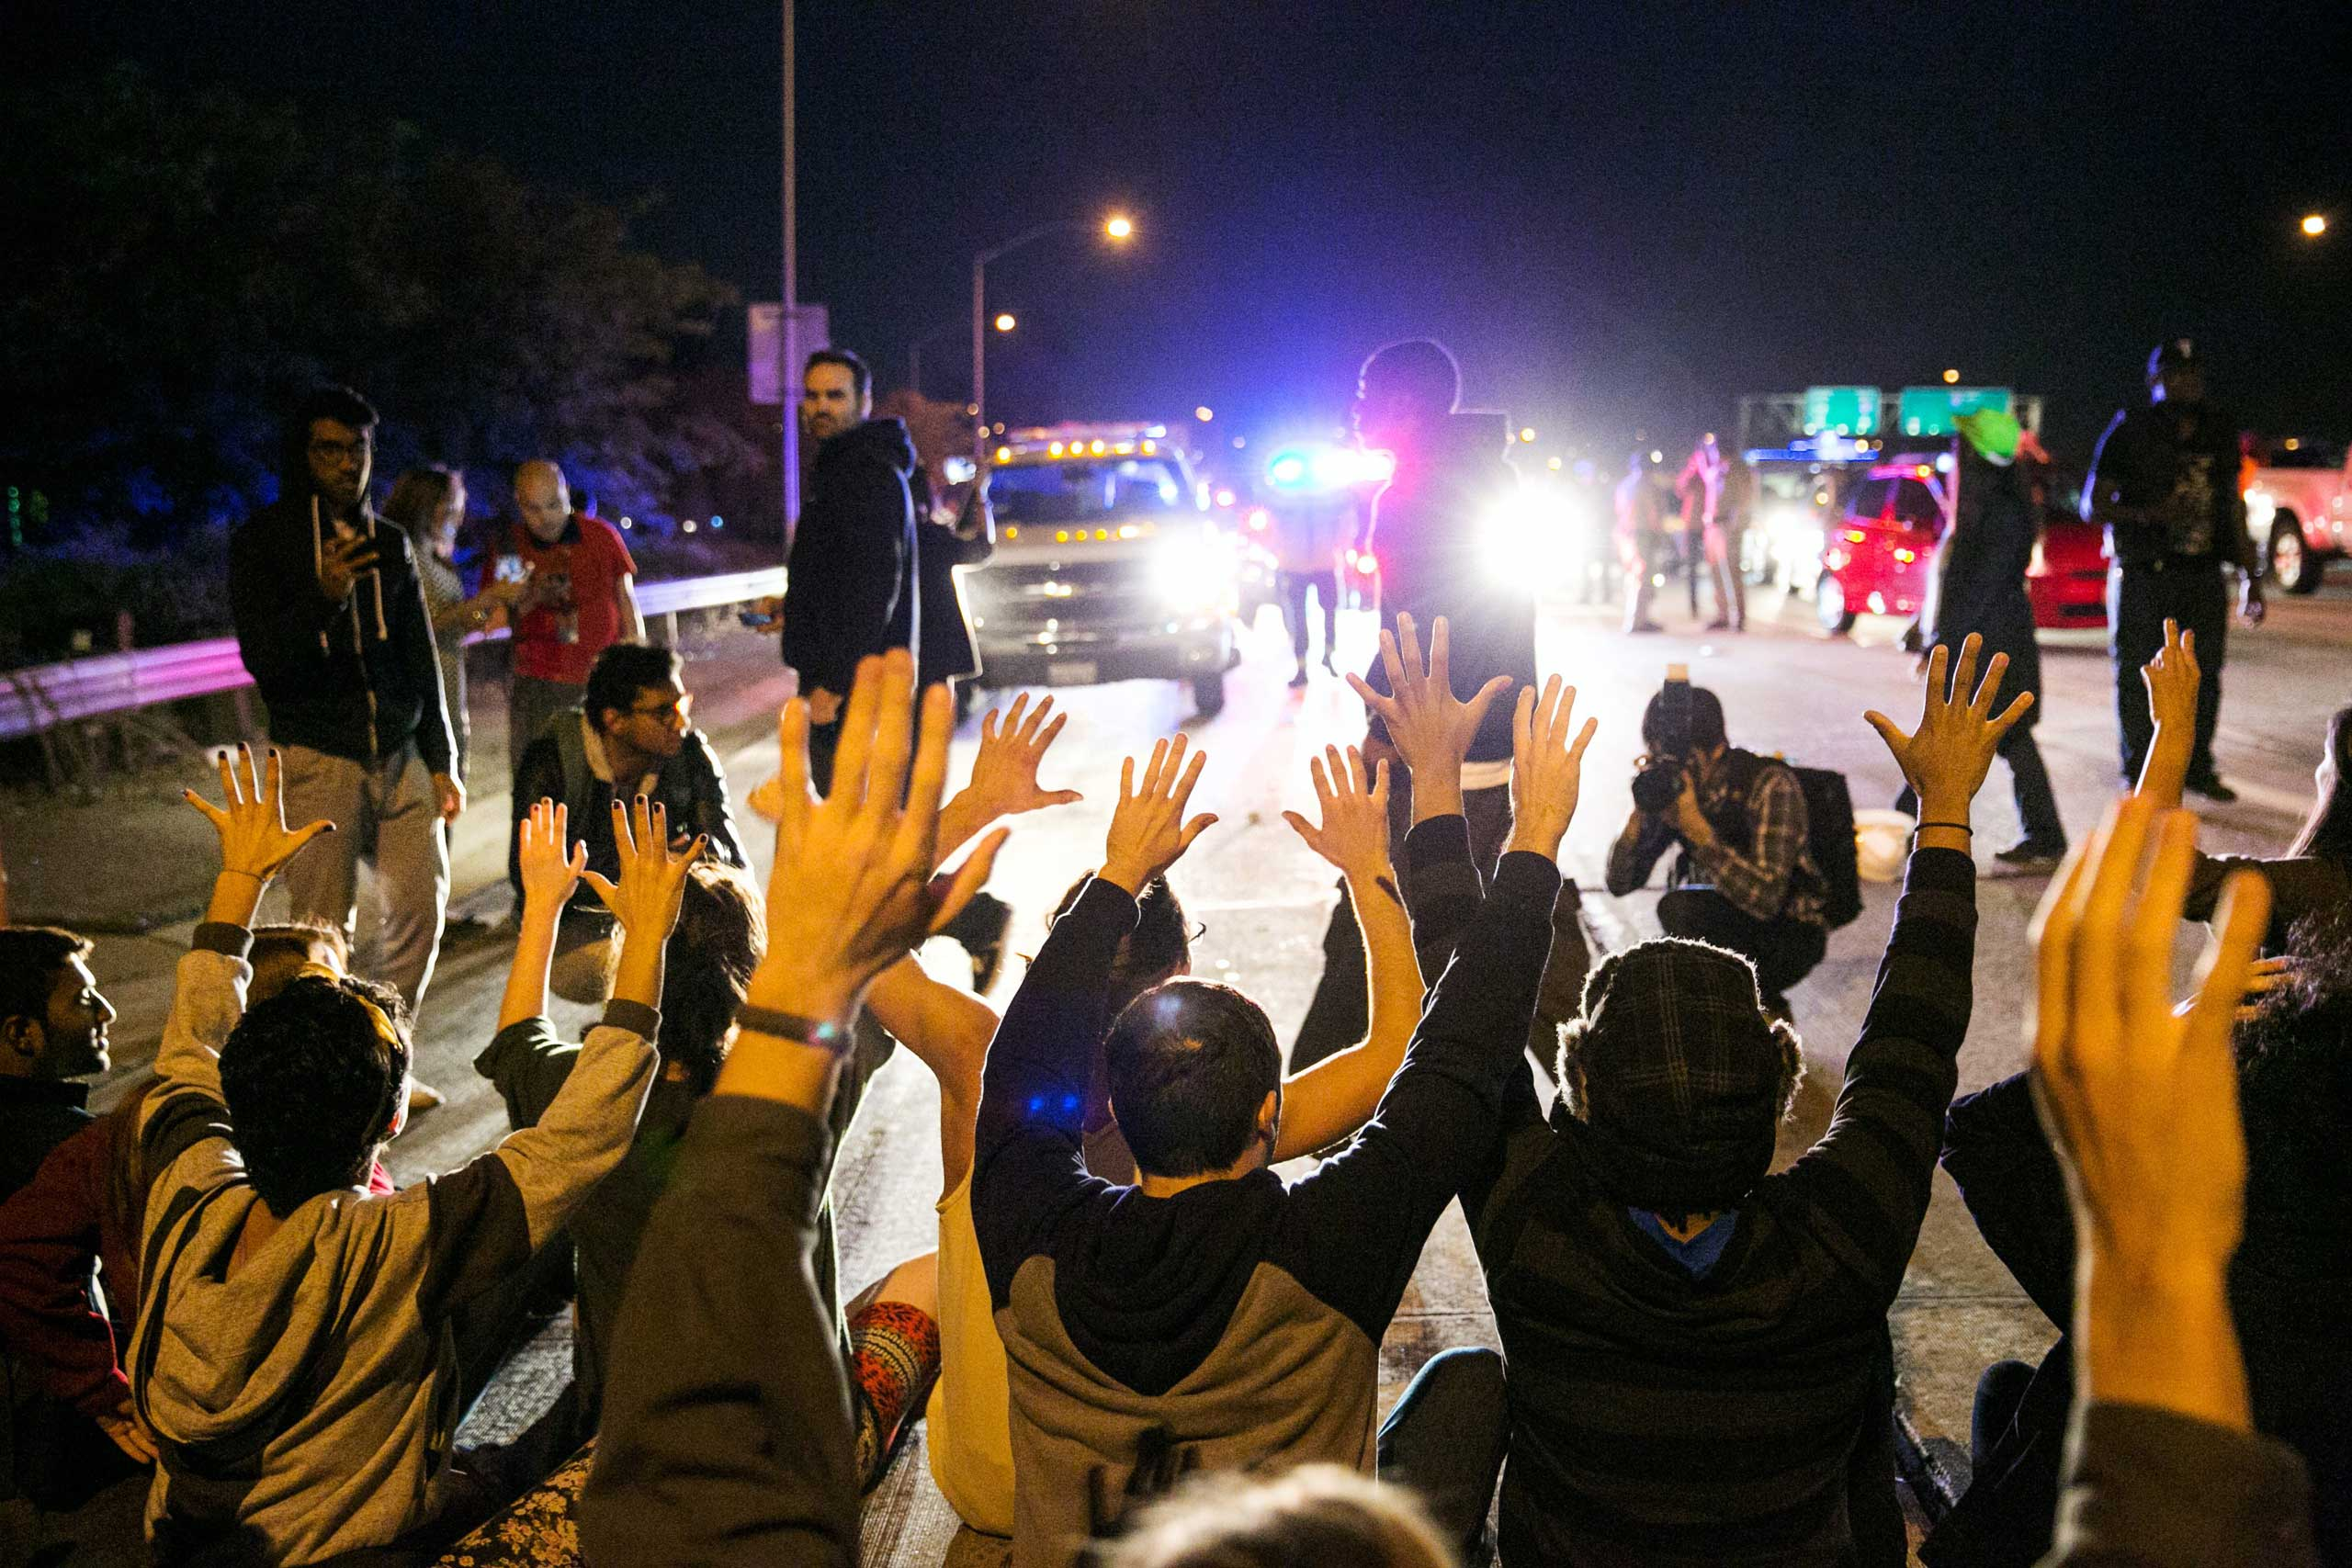 Protesters raise their hands and sit on the ground to block traffic on the 110 Freeway in Los Angeles on Nov. 25, 2014.